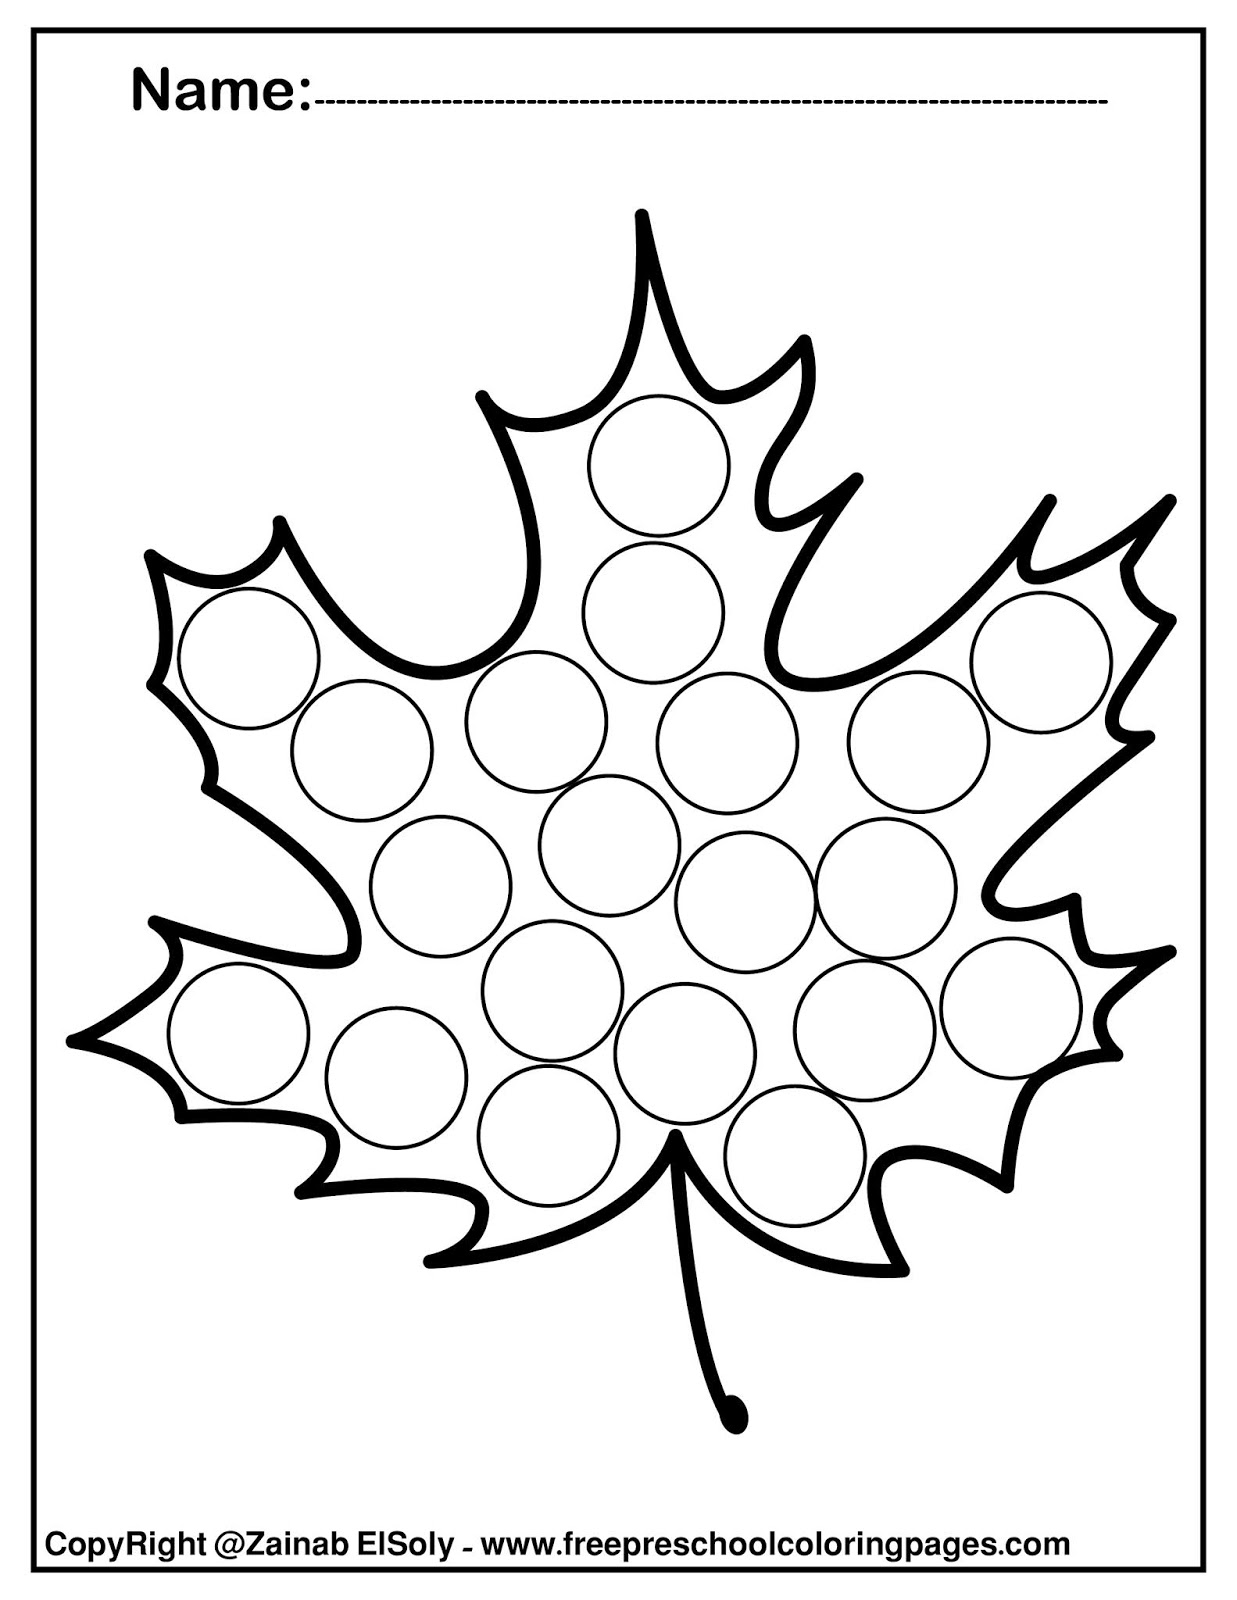 Autumn Lights Picture: Autumn Leaves Coloring Pages | 1600x1237